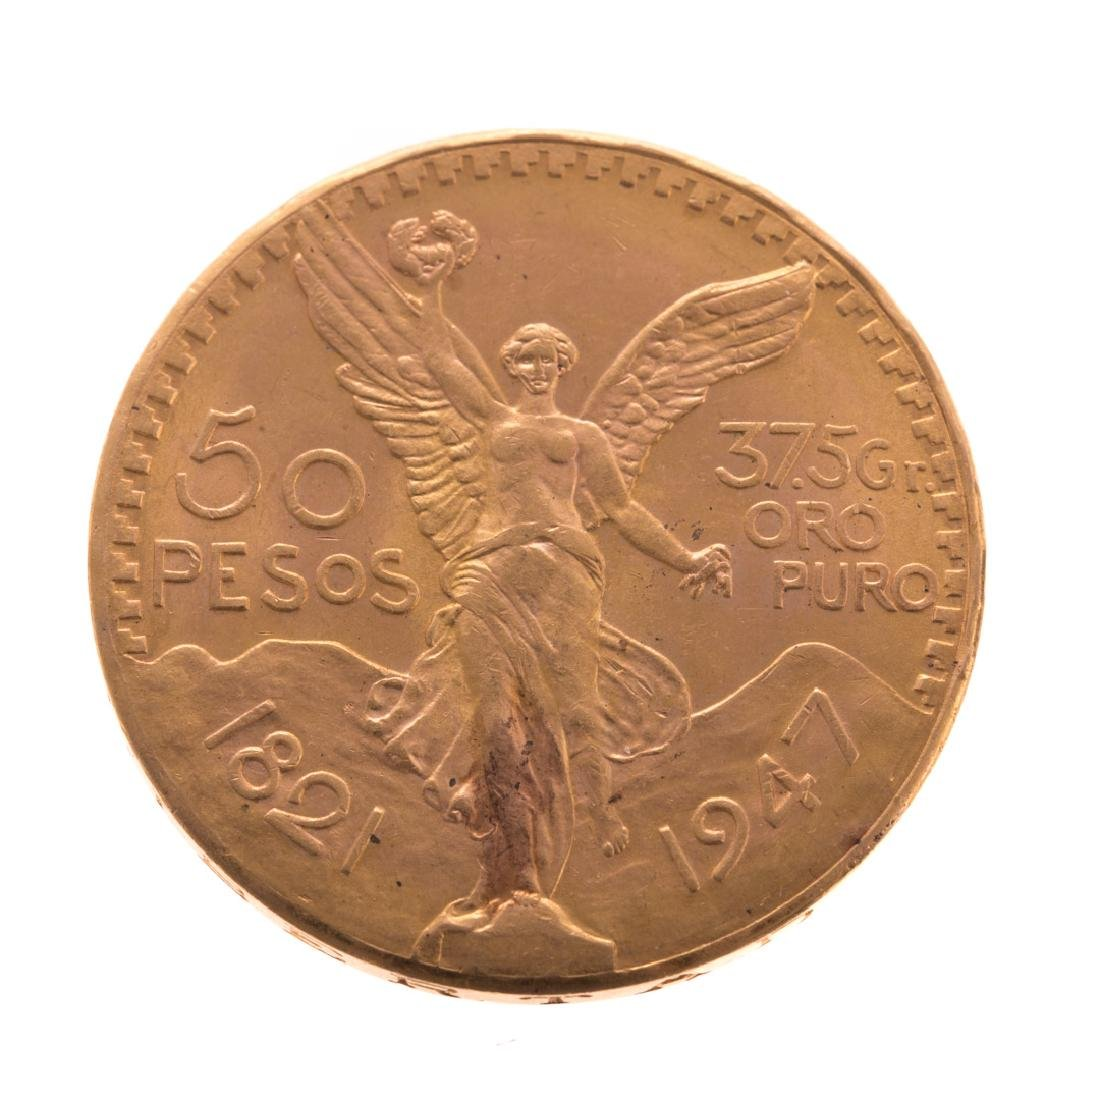 [World] Mexican 1947 50 Pesos Gold